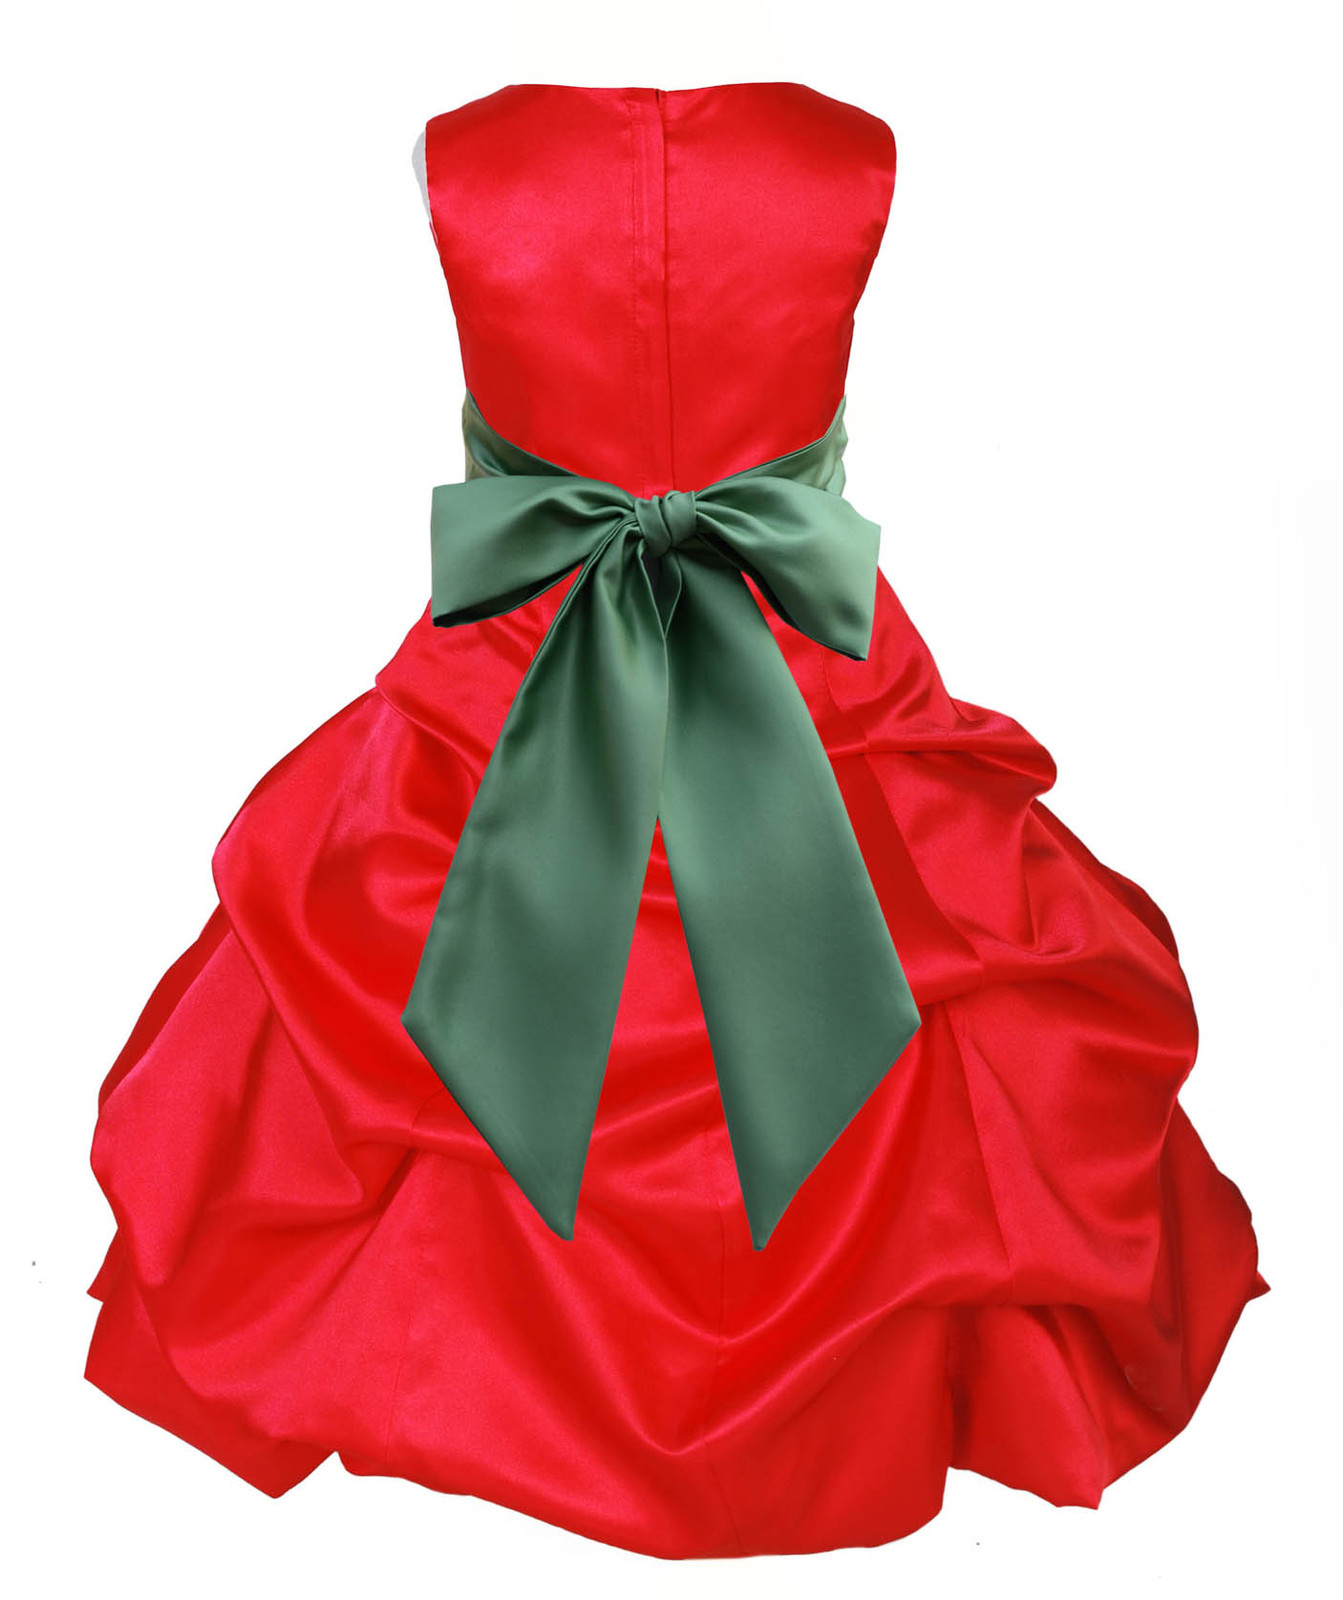 Satin red flower girl dress christmas pageant wedding bridesmaid new